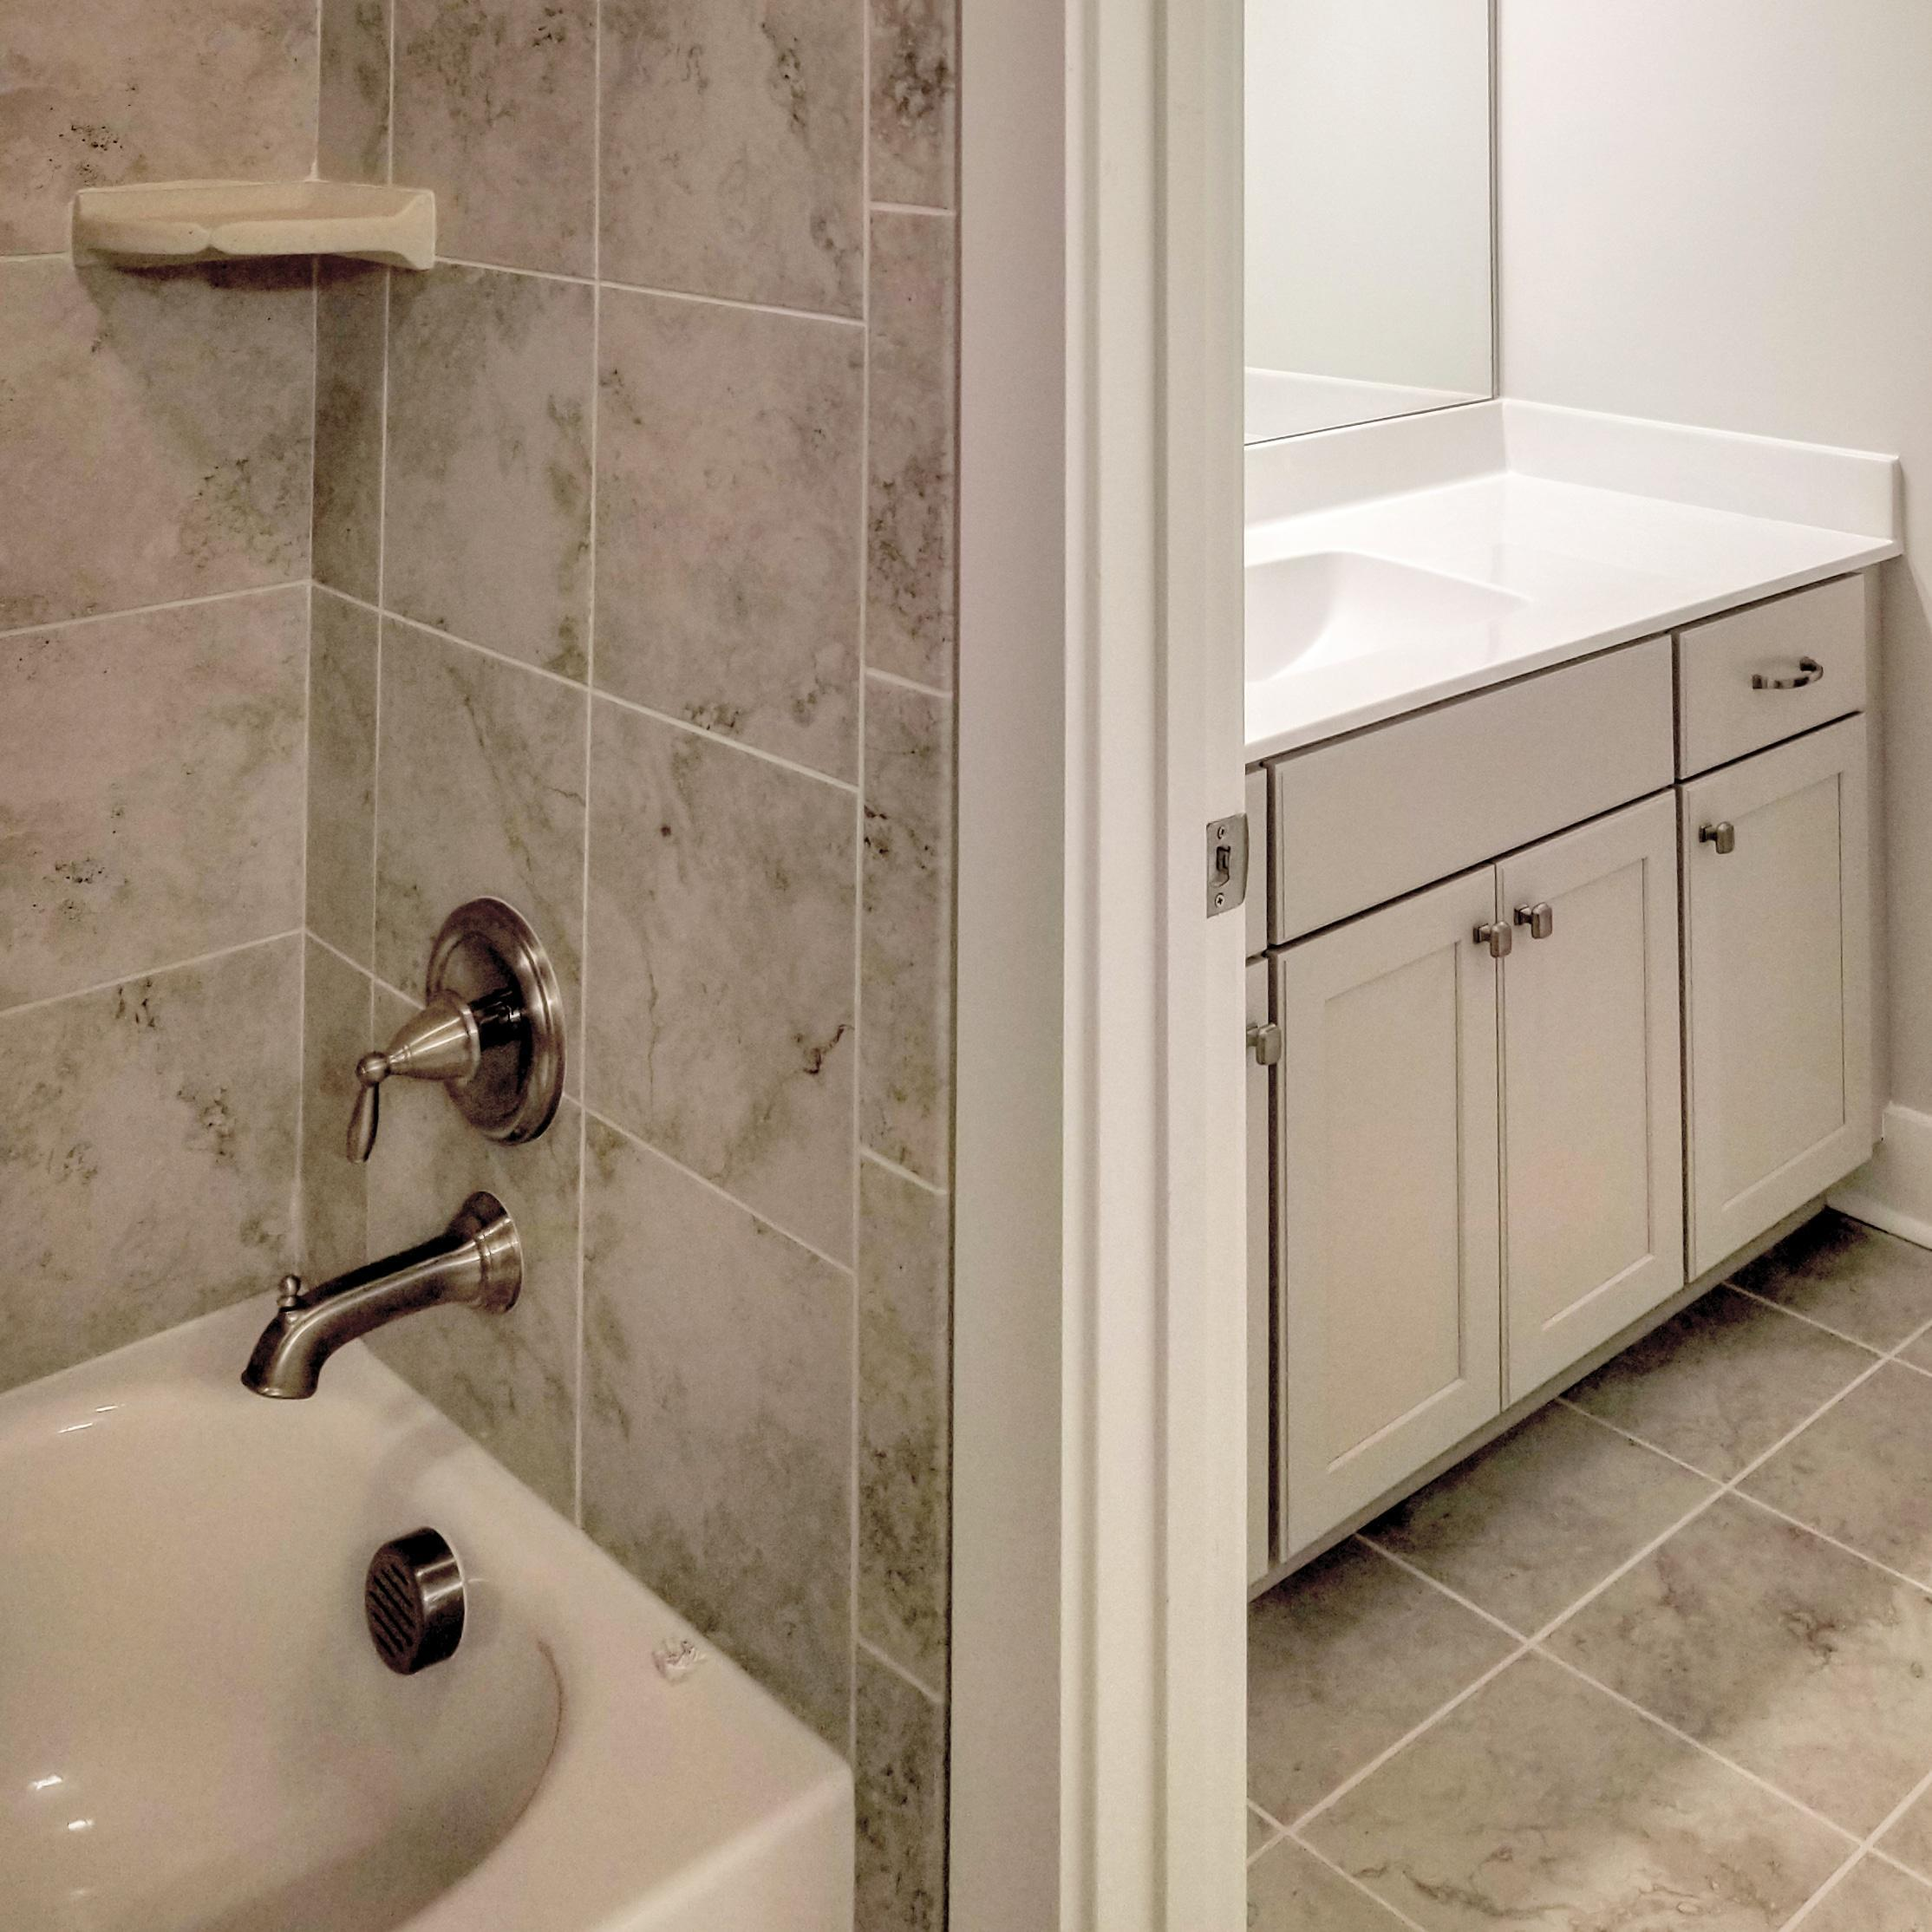 Bathroom featured in the Cumberland By Konter Quality Homes in Savannah, GA